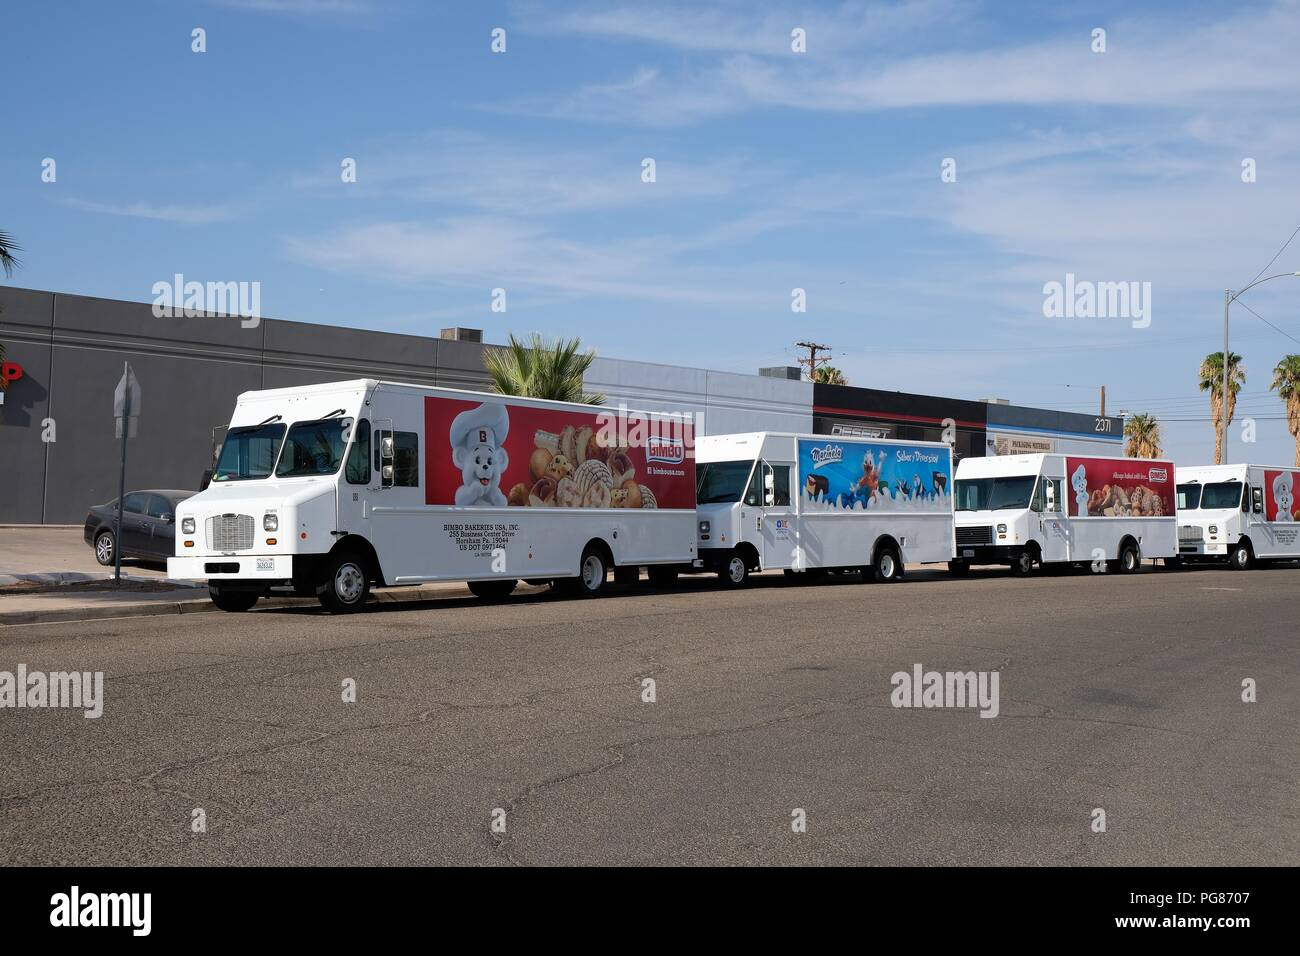 Bimbo bakery delivery trucks in Calexico, California, United States. - Stock Image